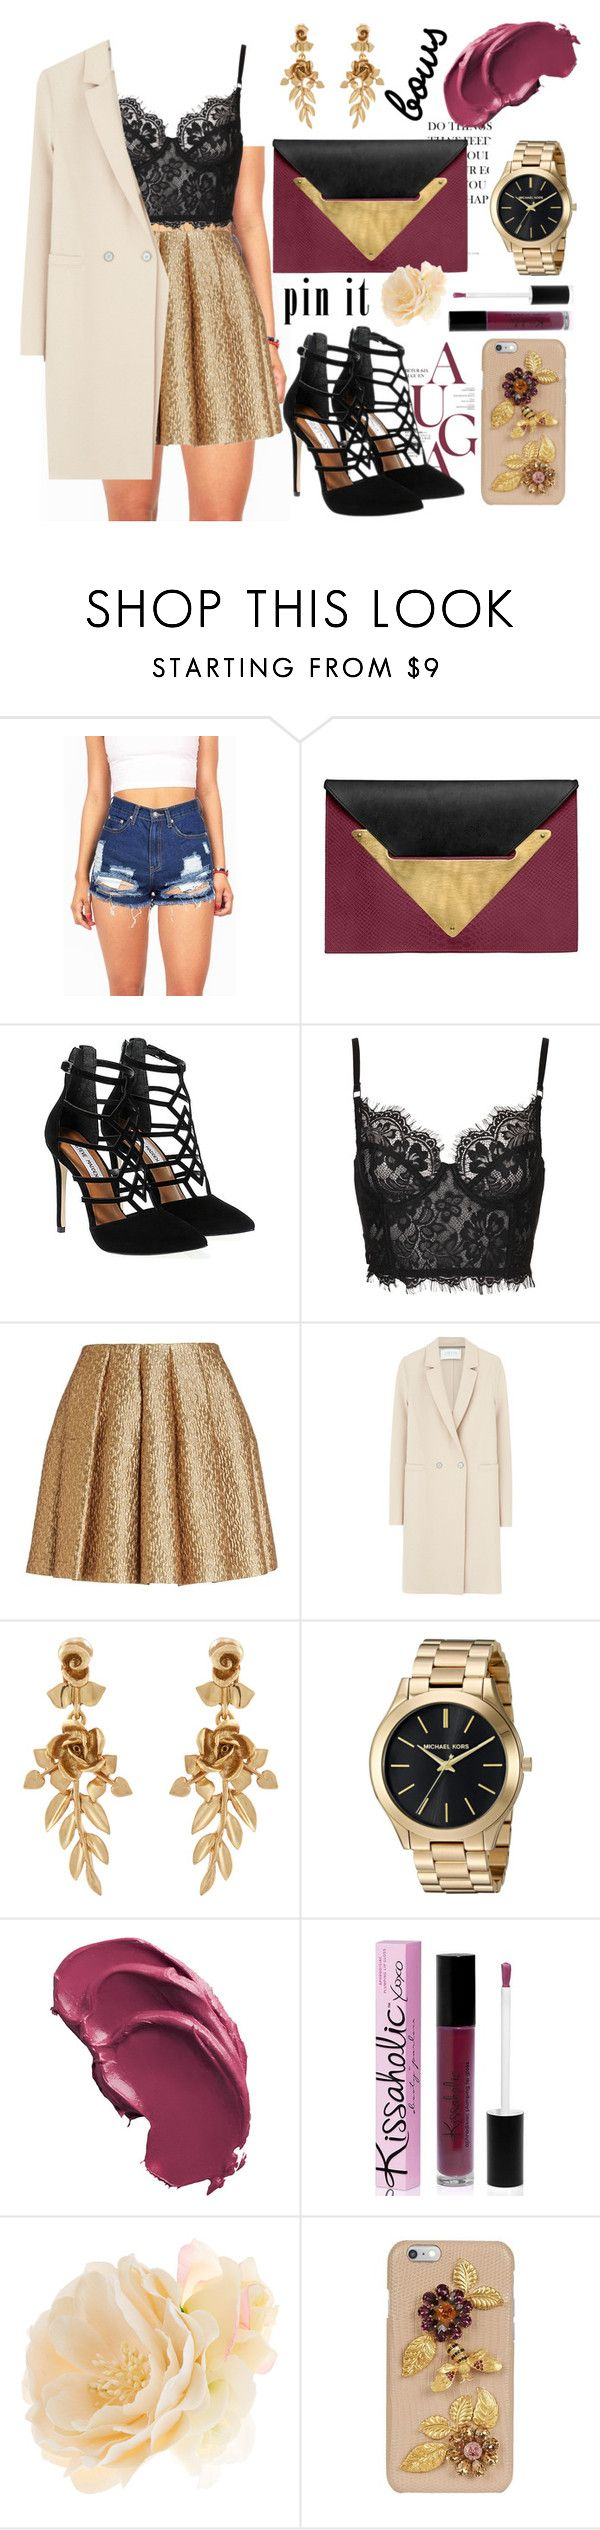 """""""happy new year!"""" by deepblueocean7 ❤ liked on Polyvore featuring Dareen Hakim, Steve Madden, Creatures of the Wind, Harris Wharf London, Oscar de la Renta, Parlor, Accessorize and Dolce&Gabbana"""